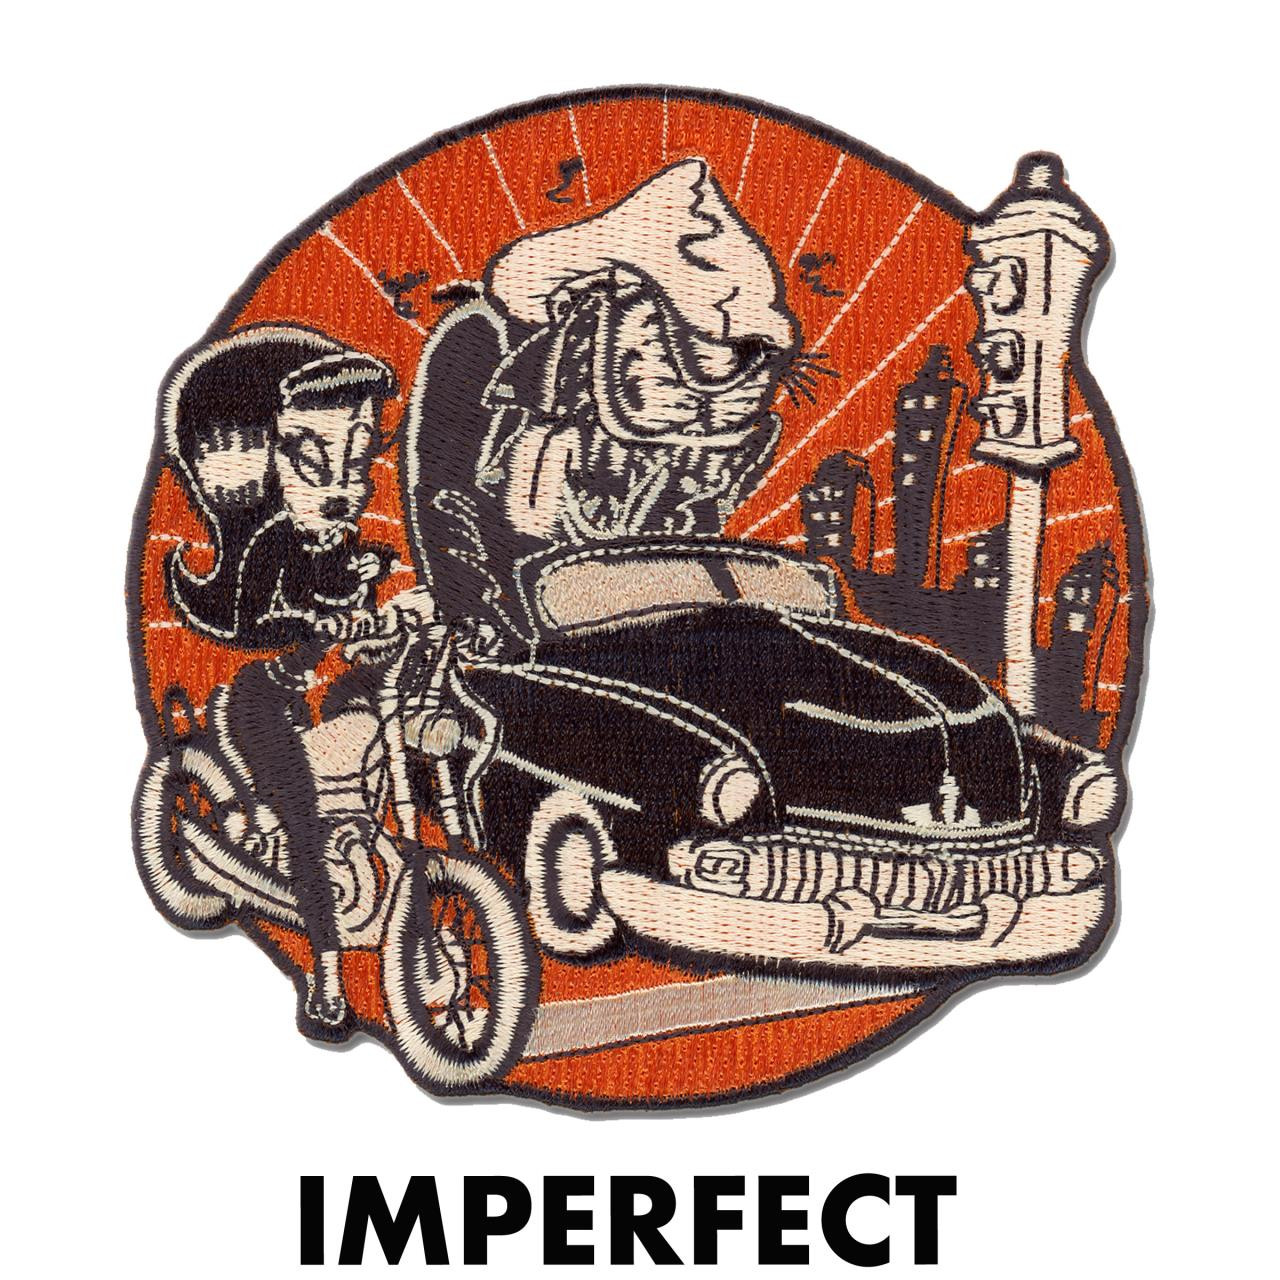 Imperfect Finks N' Femmes Iron Invasion Patch -